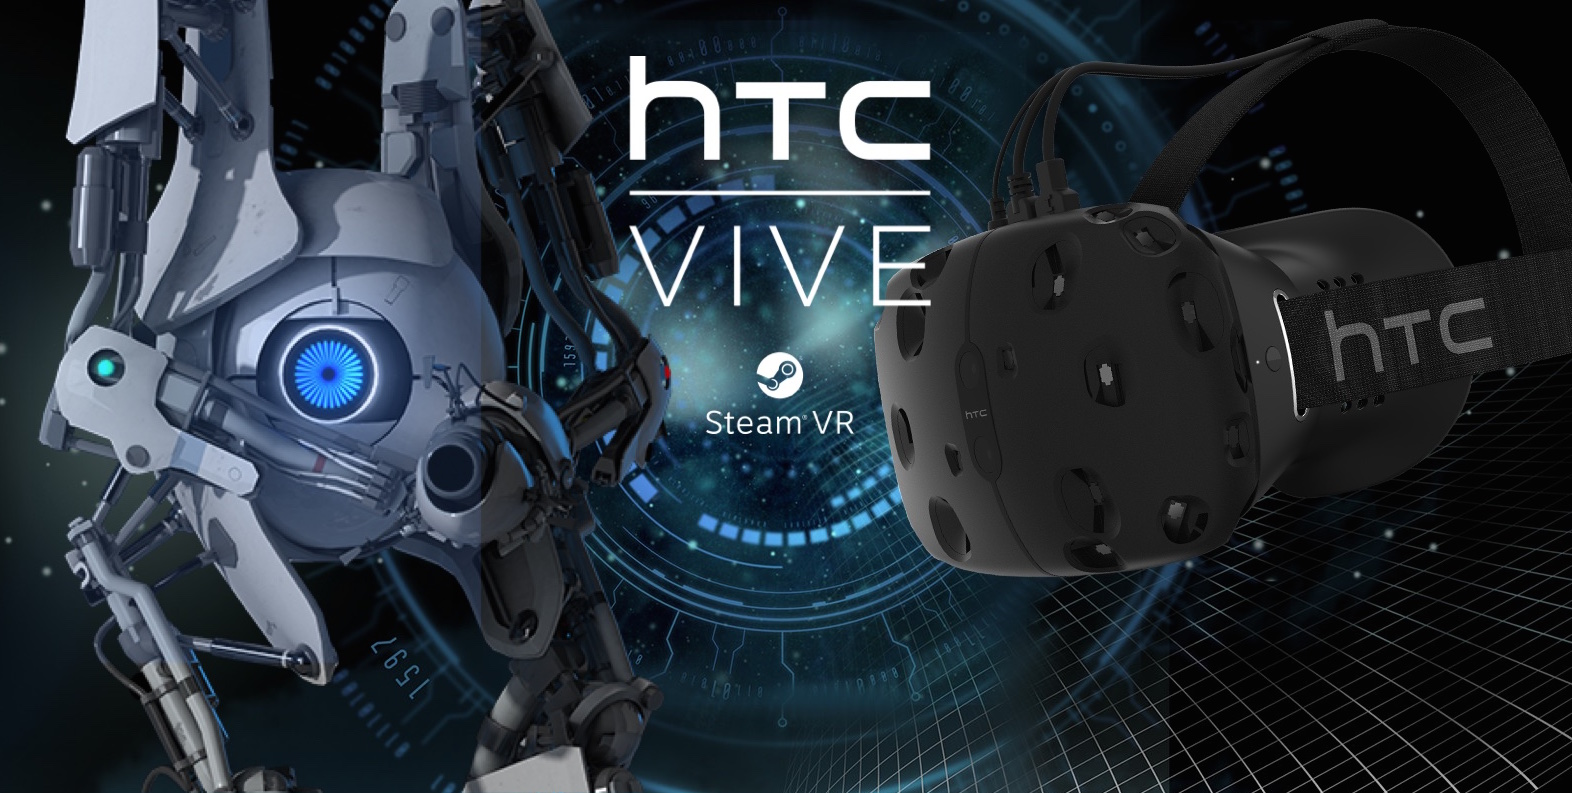 http://www.roadtovr.com/wp-content/uploads/2015/07/htc-vive-gamescom-featured